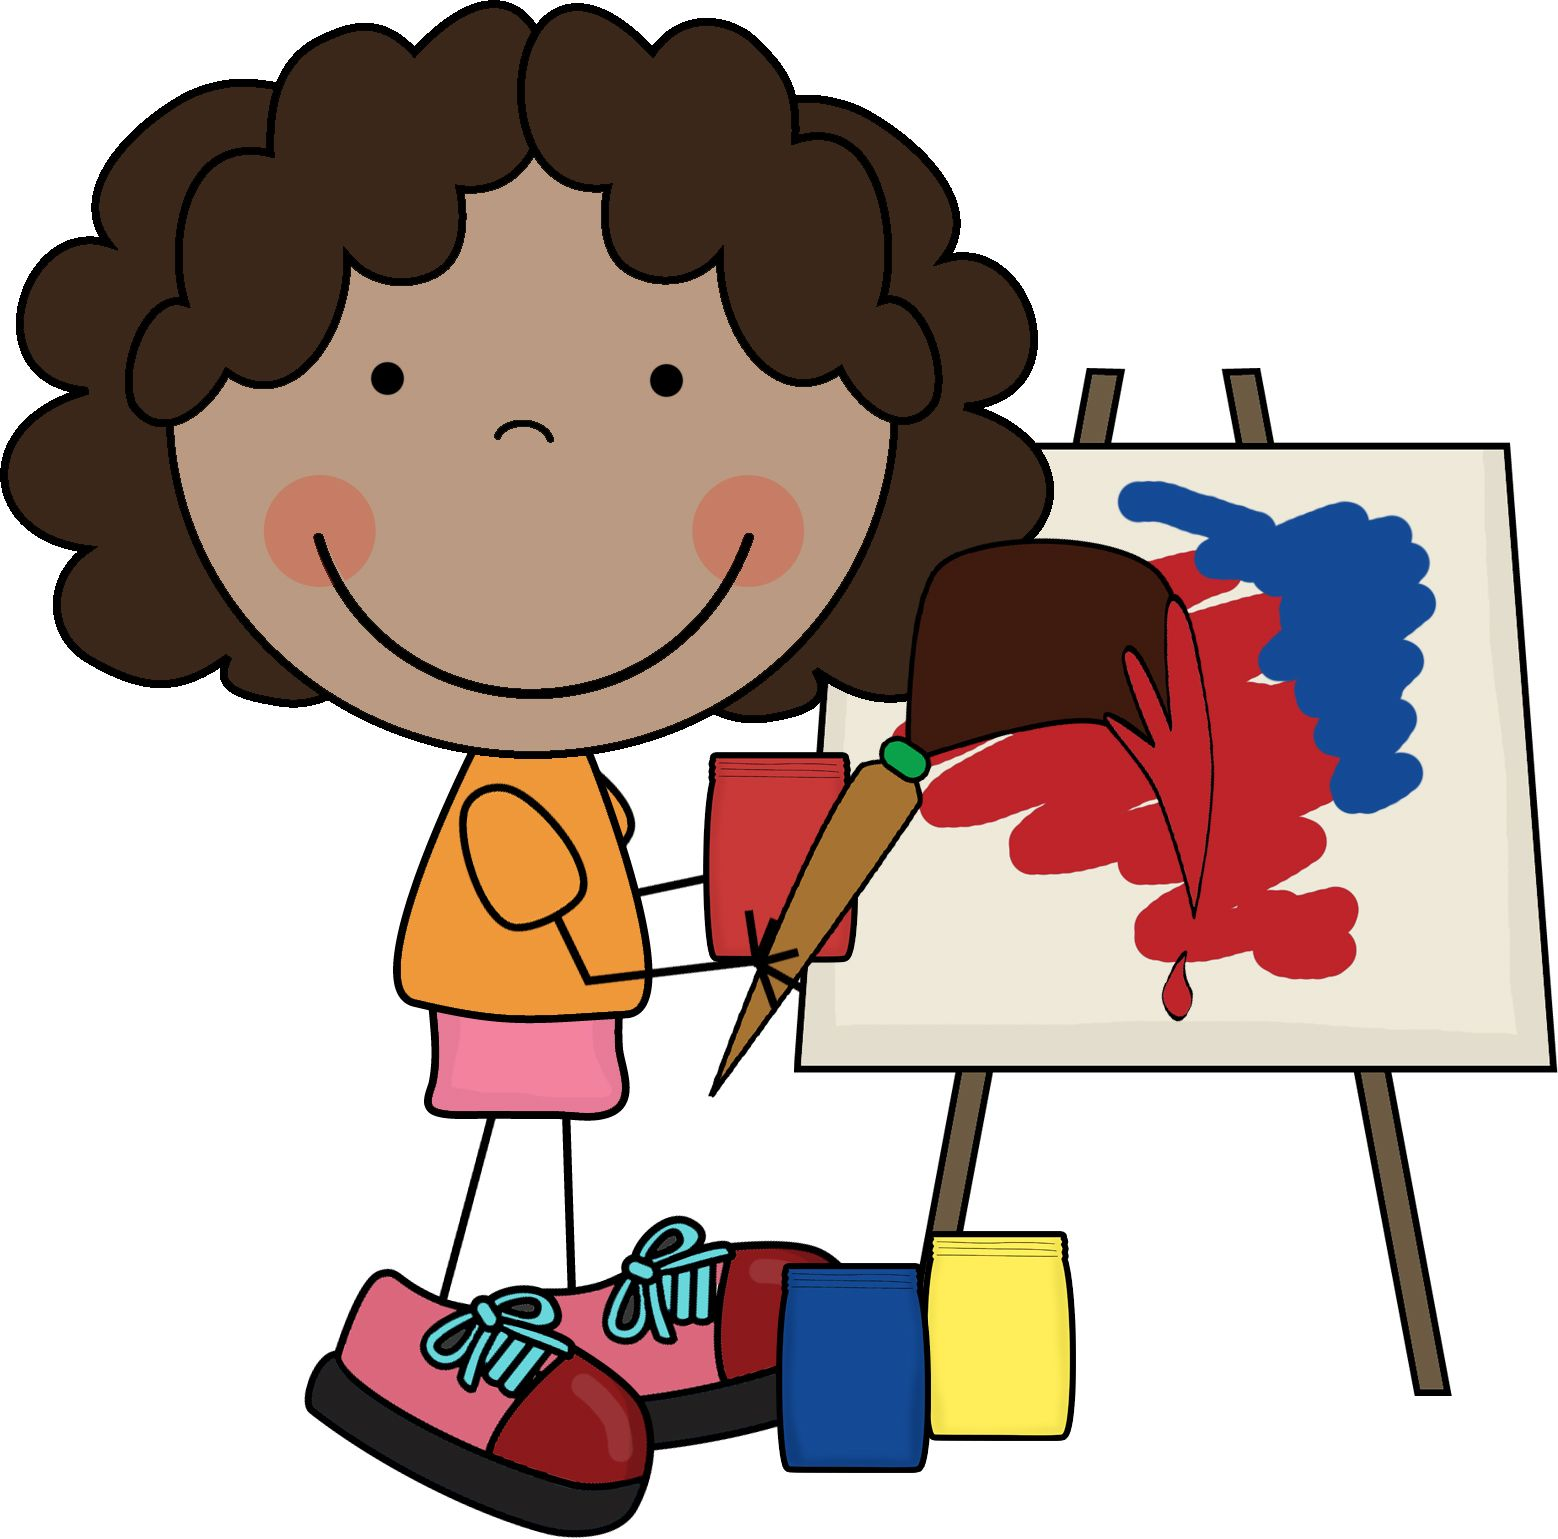 Children creating art clipart clip royalty free library creating doodle   dOodles   Clip art, School art projects, Kids graphics clip royalty free library